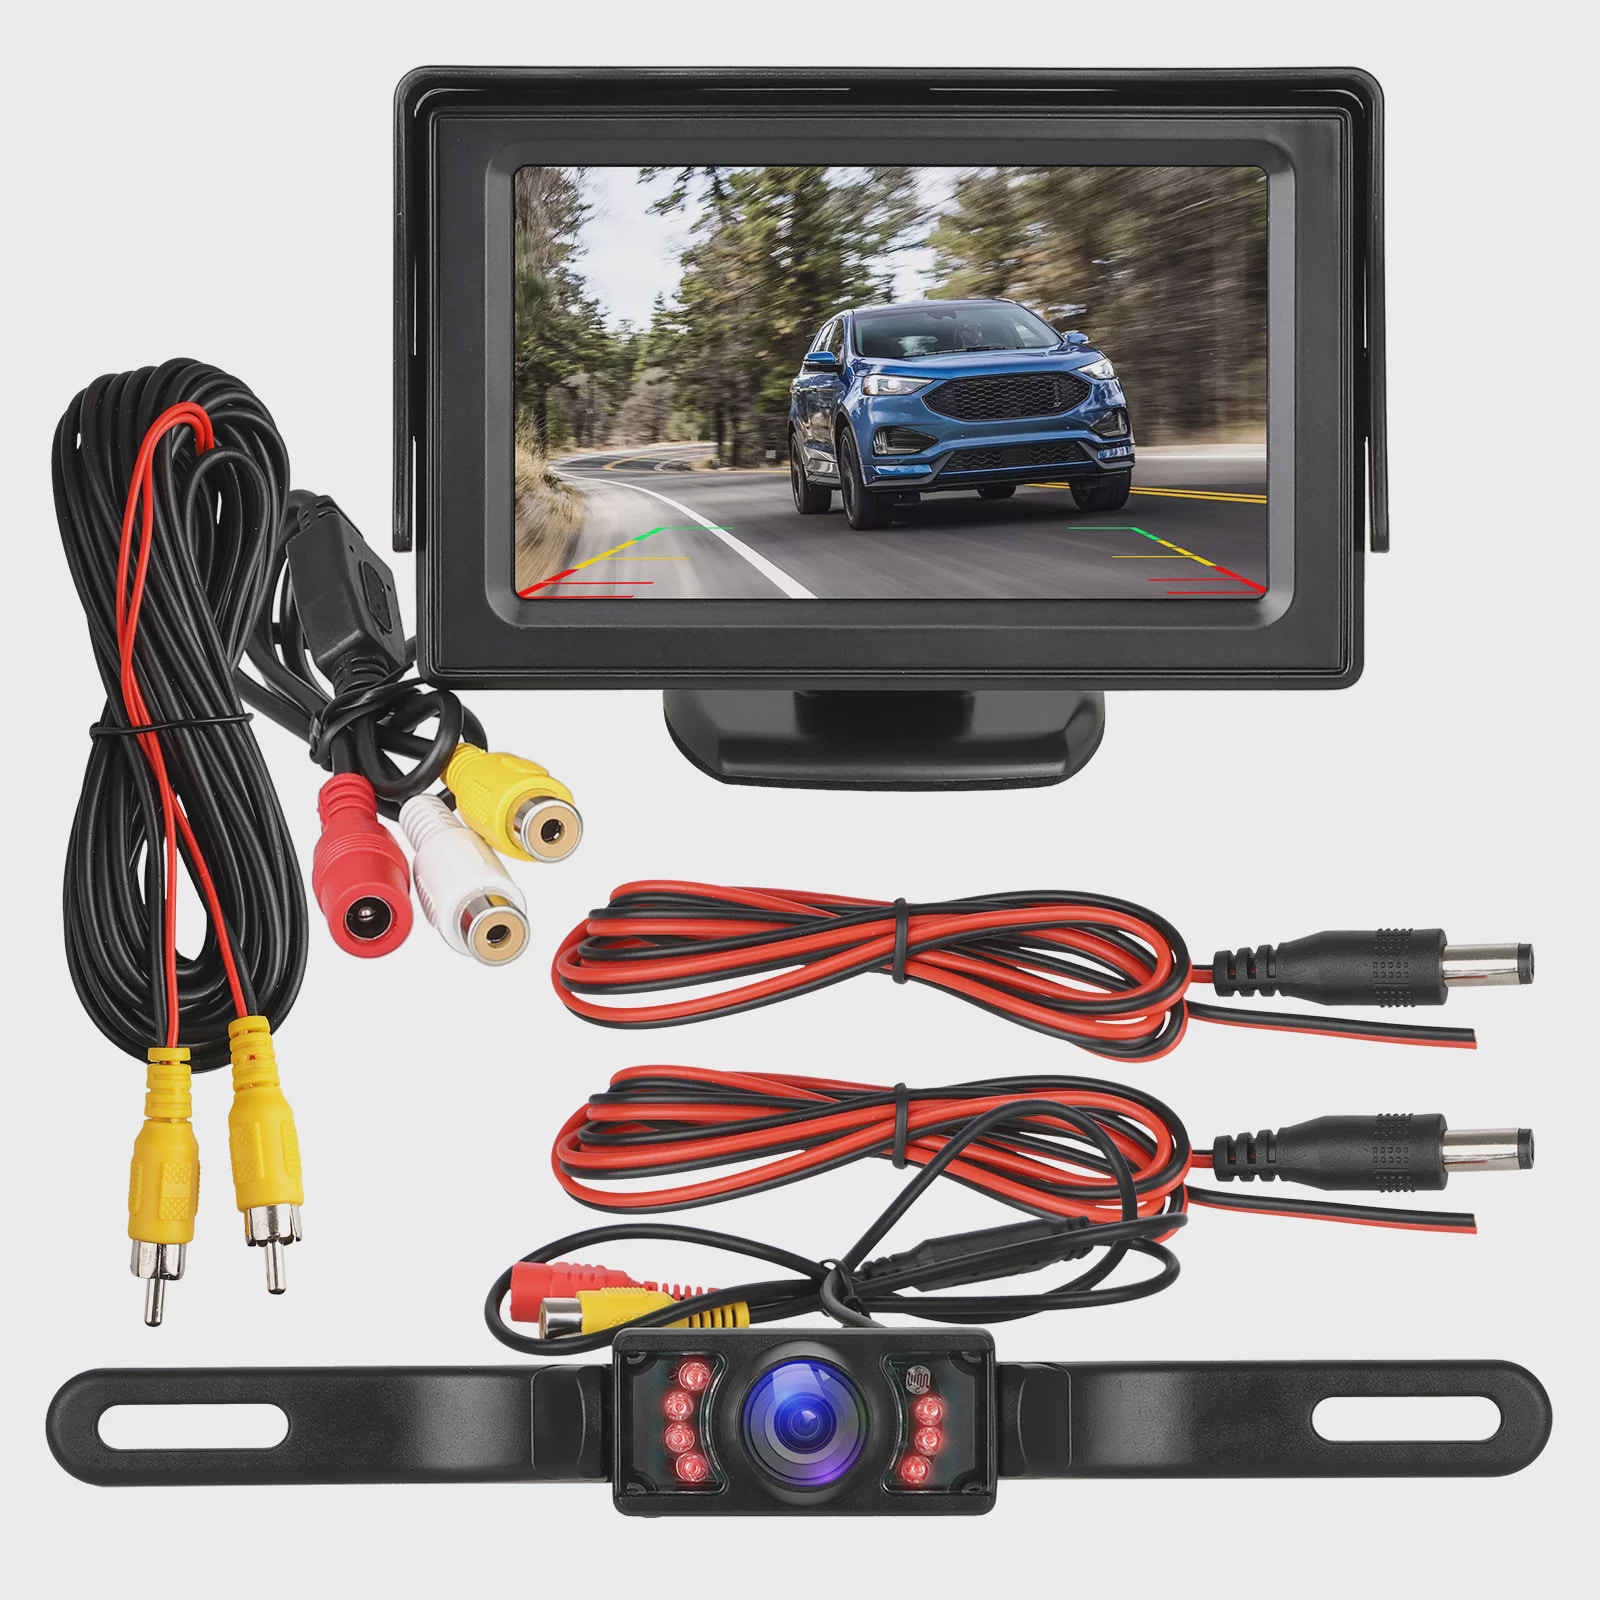 Vehicle Backup Cameras And Car 7 Inch Monitor Screen Waterproof Rear View For